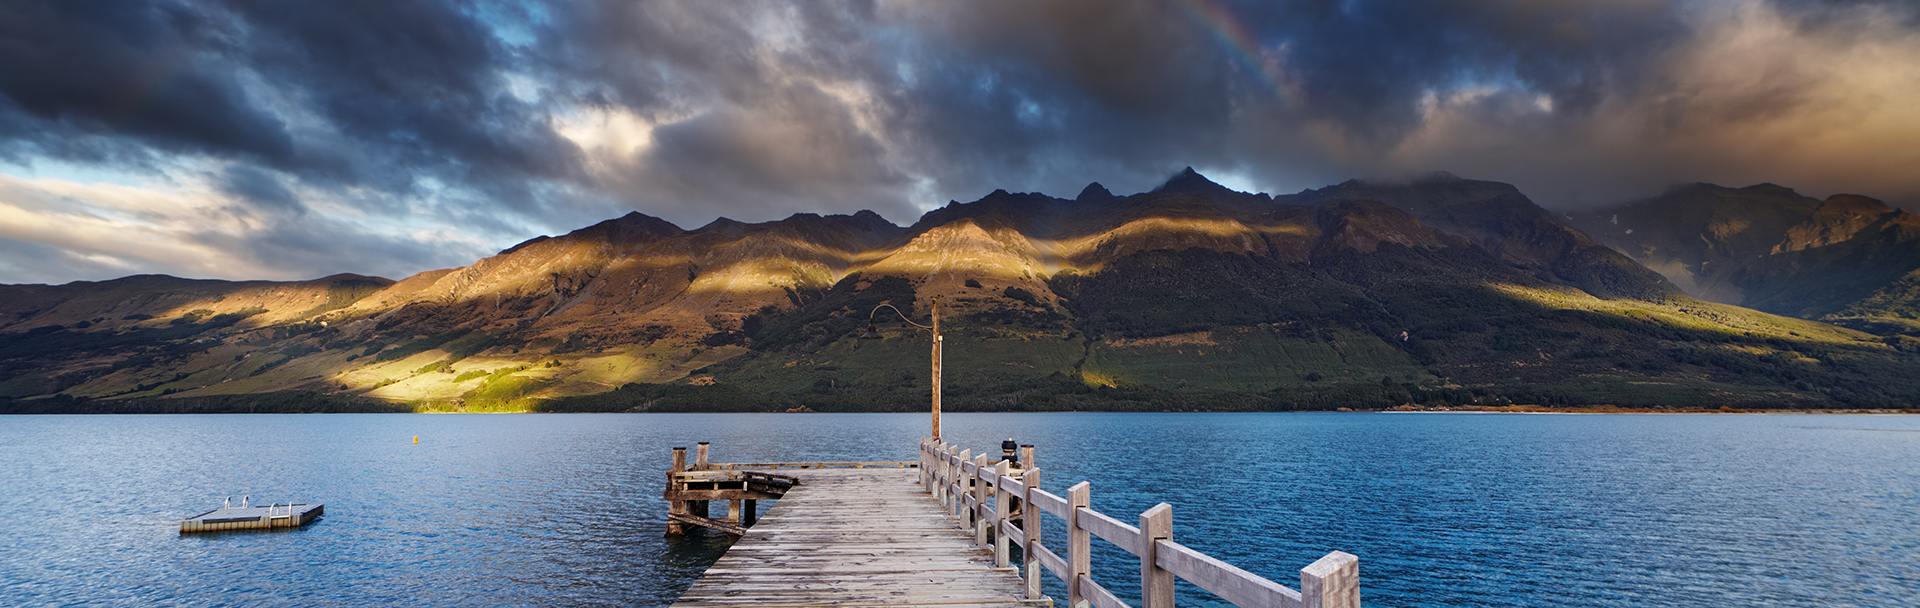 Personalised tours of New Zealand's South Island